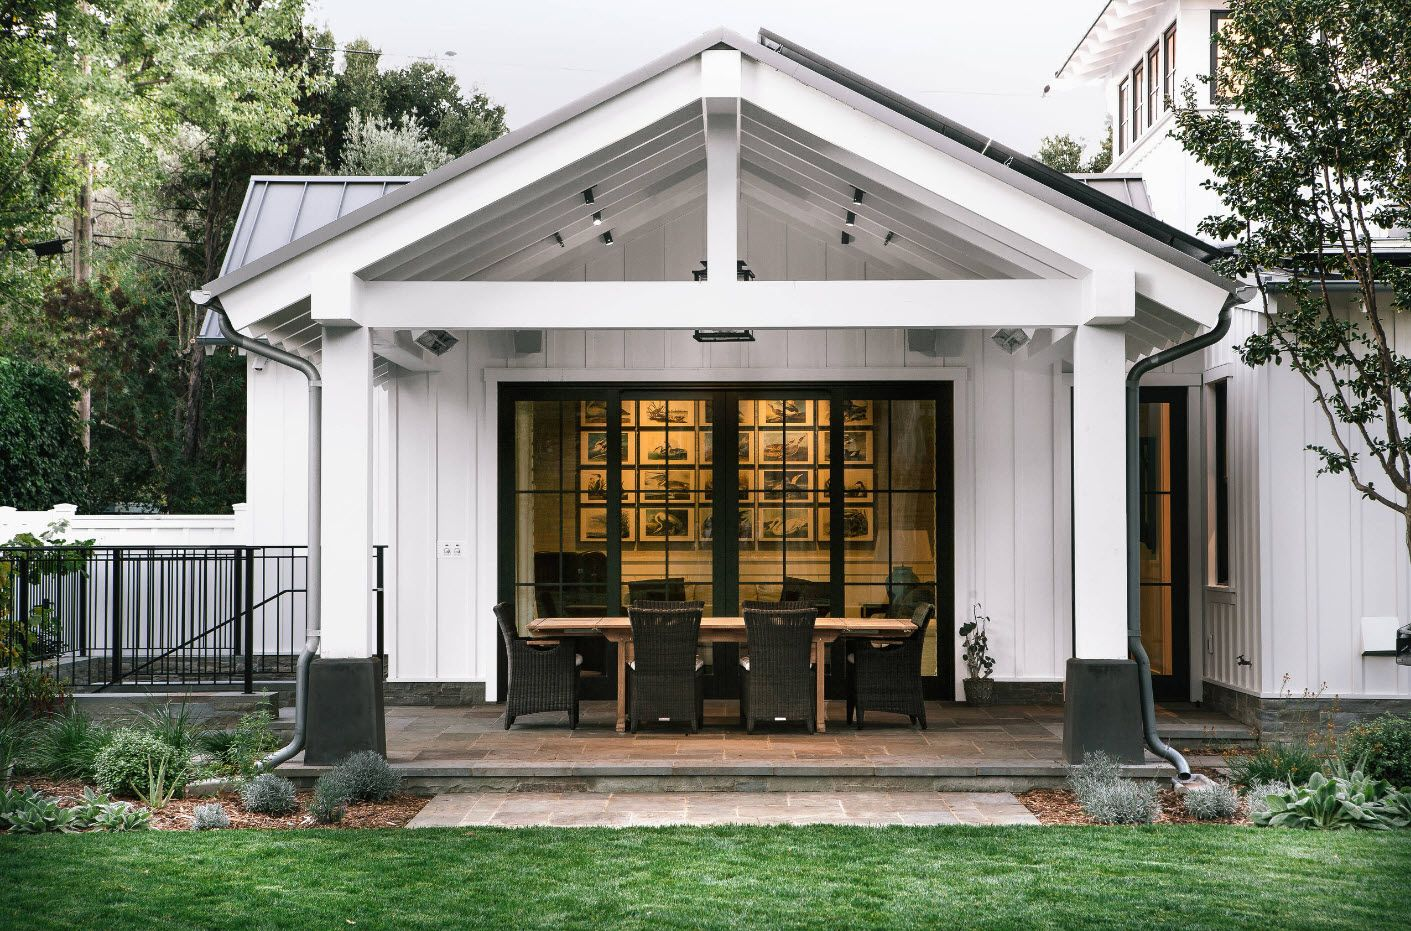 Casual American style in gray tones and wooden roof over the leisure zone of the porch